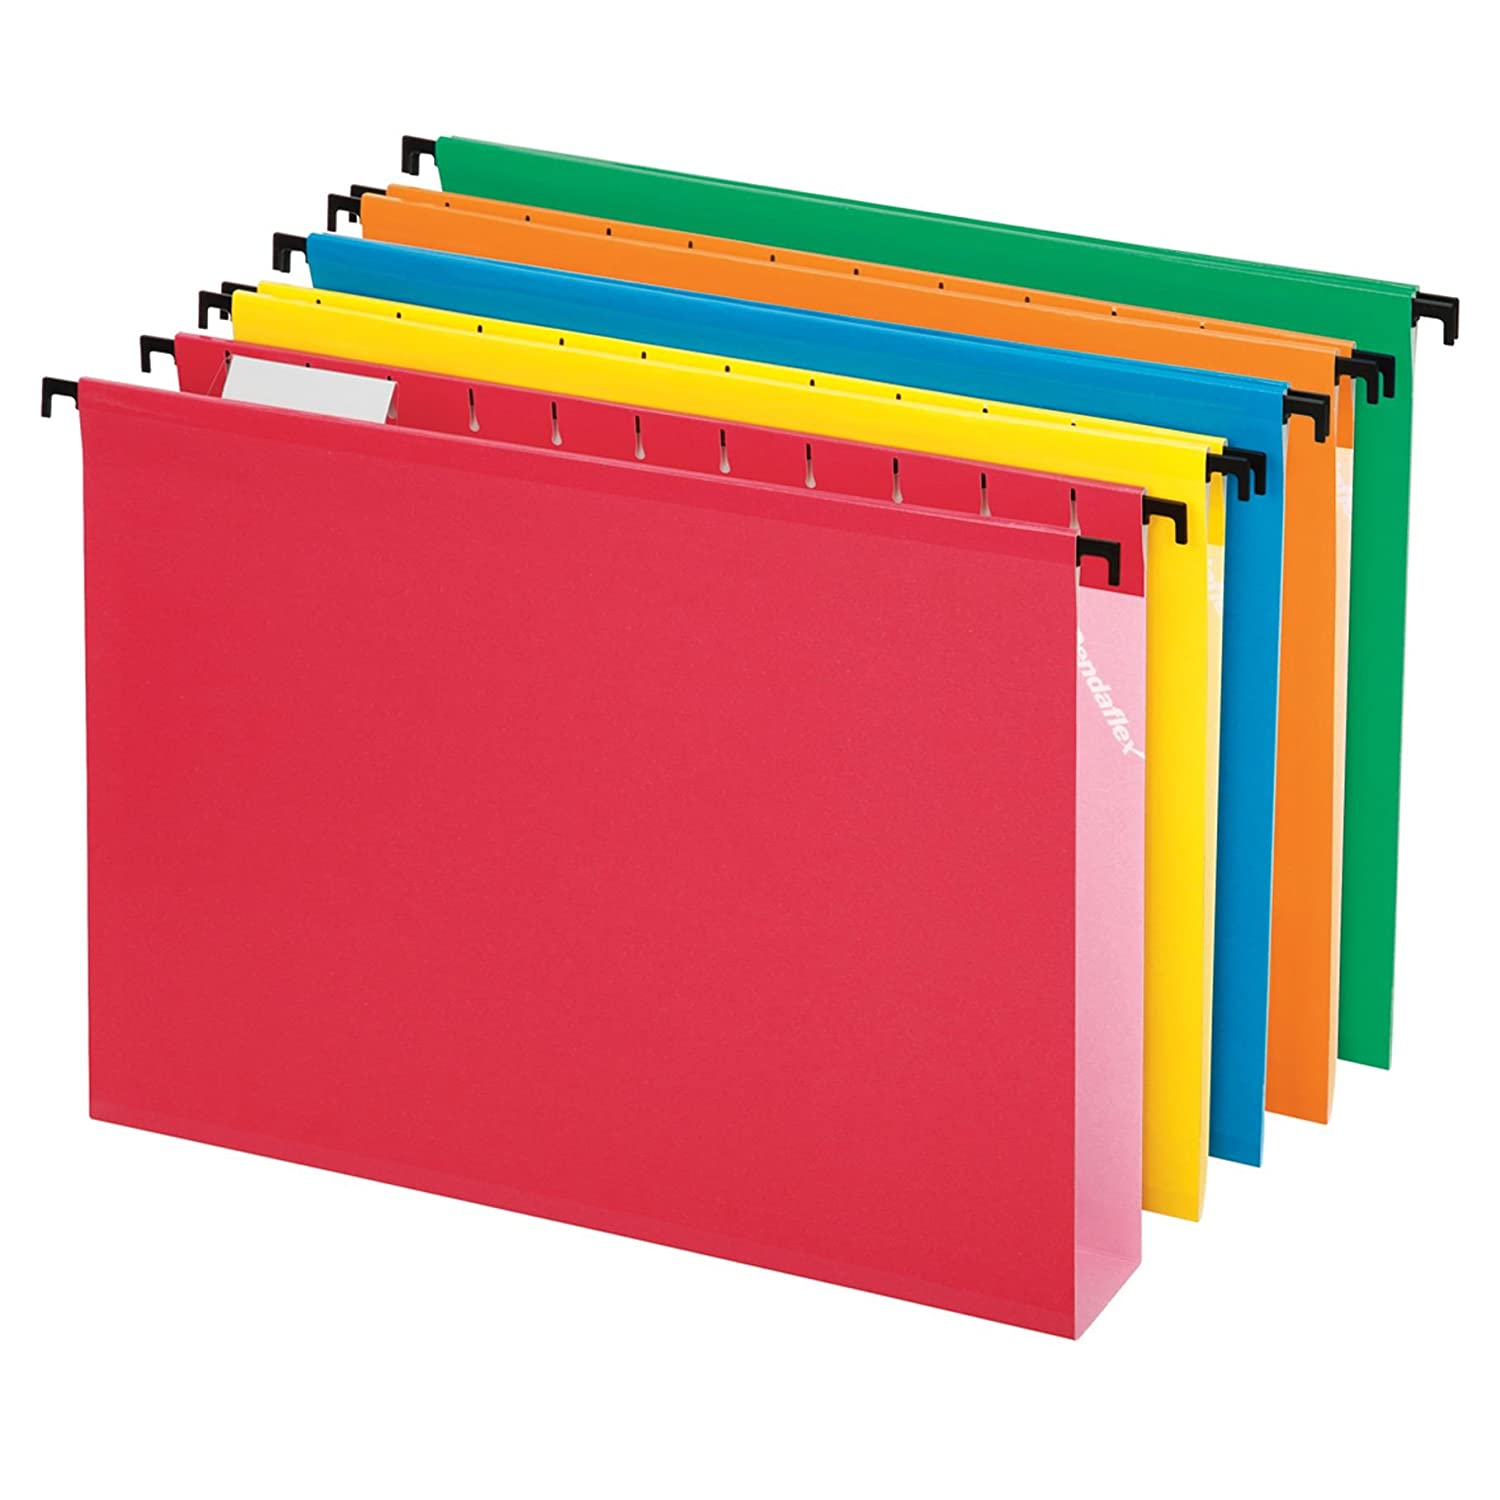 SureHook Extra Capacity Hanging Folder, 2 Expanding, Assorted (Blue, Red, Yellow, Bright Green, Orange), Letter, 2 Folders Per box, 6152X2 Asst 2 Expanding Esselte Corporation